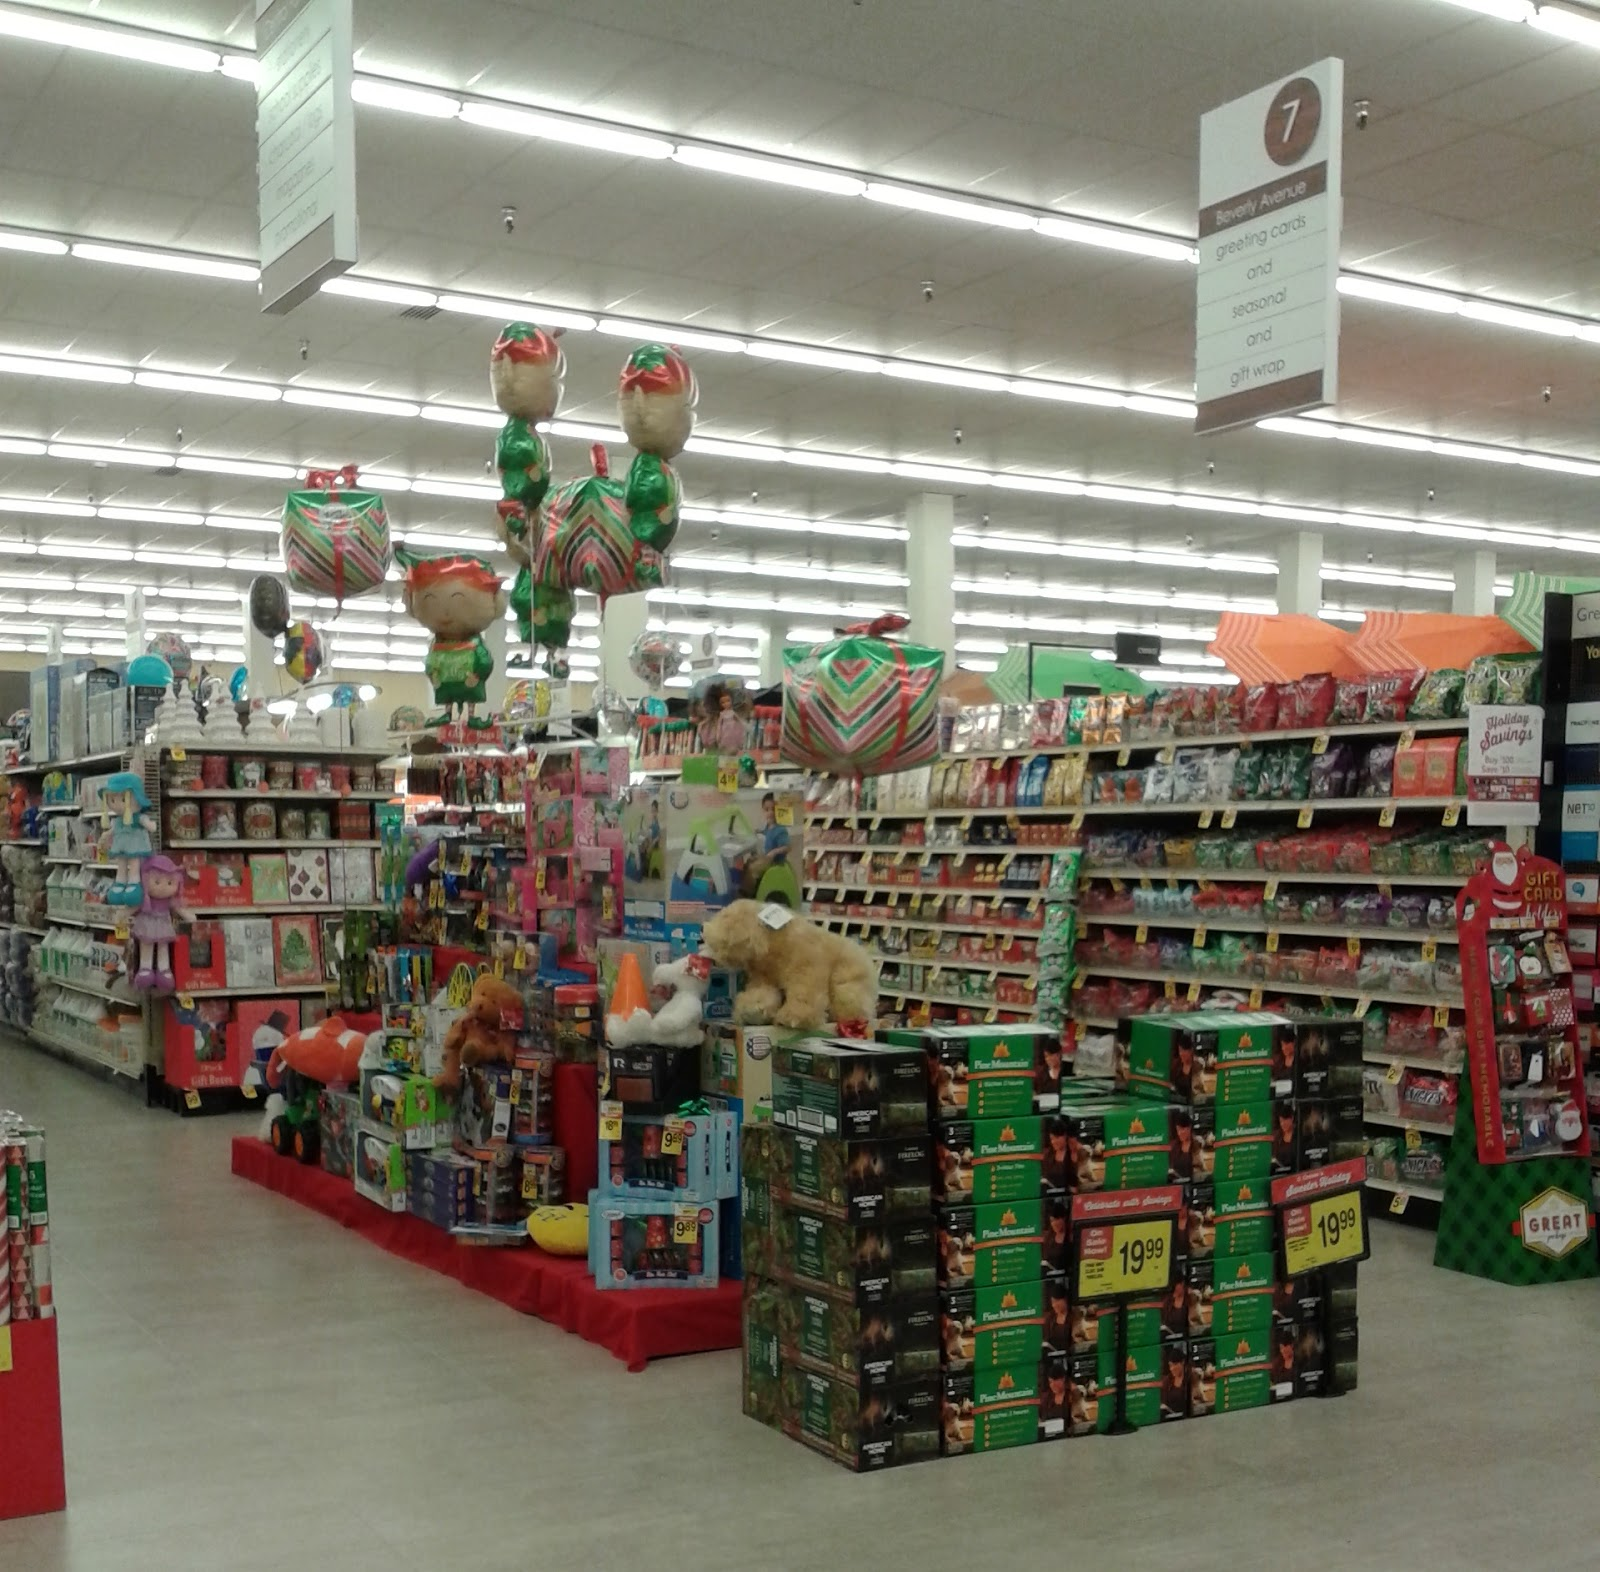 Albertsons Florida Blog: Have Yourself A Merry Little Bit ...